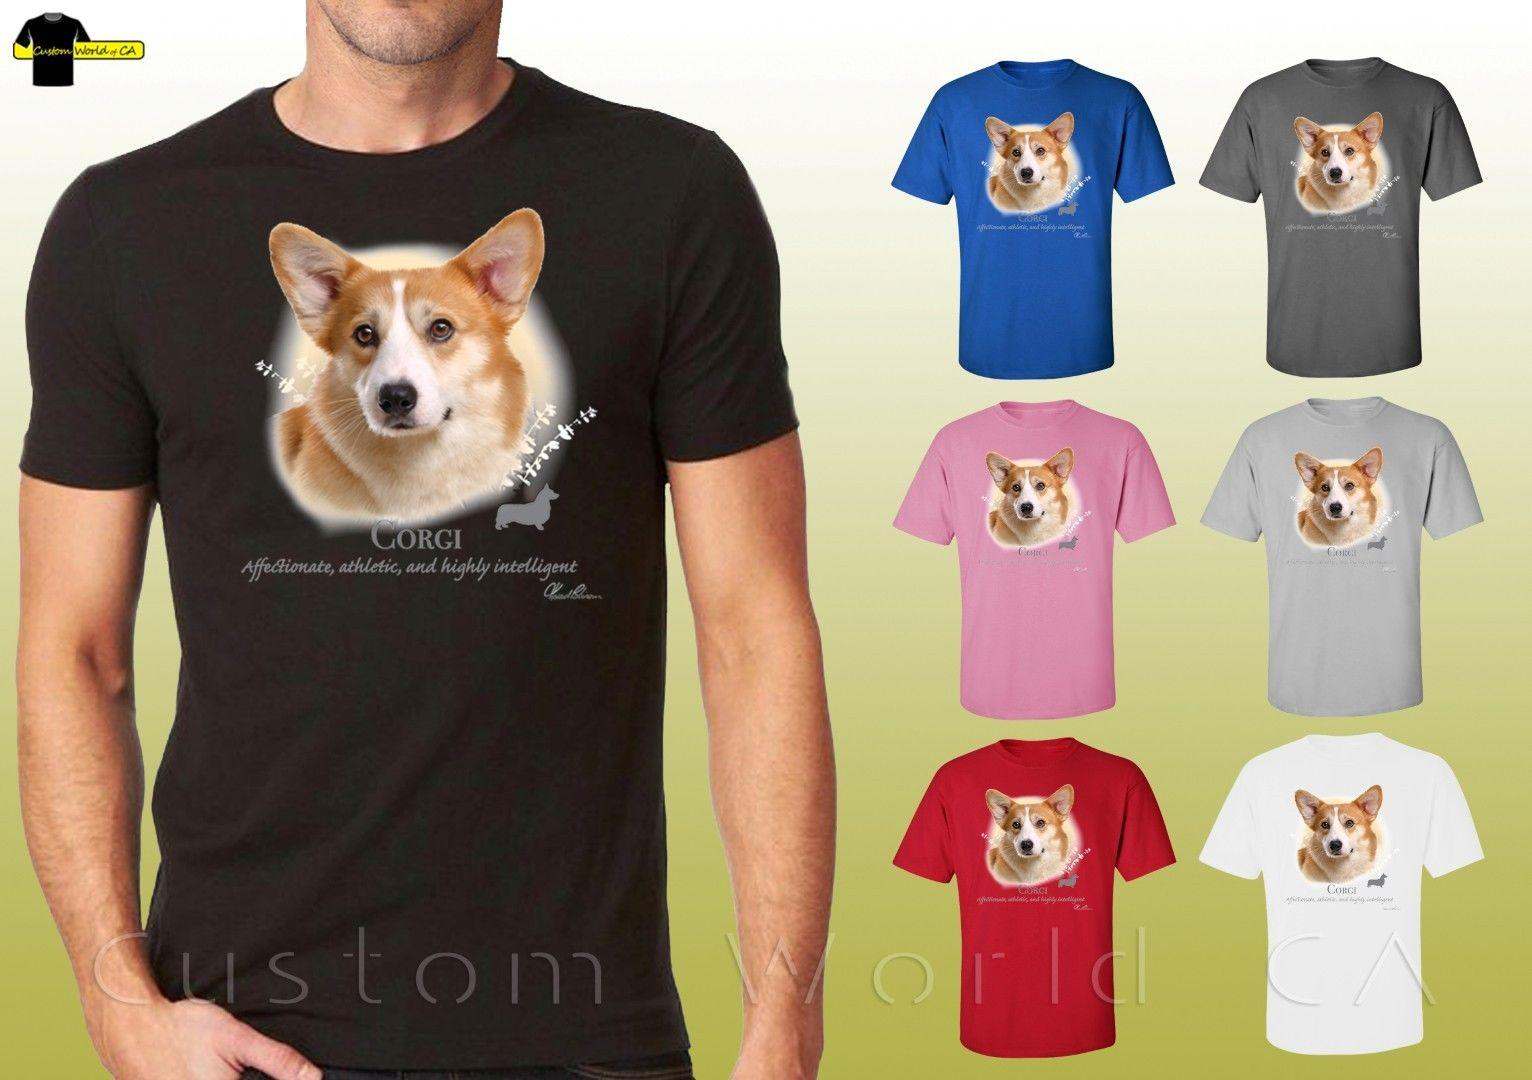 T-shirts Humorous Funny Graphic Print T Shirt Men Tops Tees Corgi Women T-shirt Short Sleeve Casual Tshirts